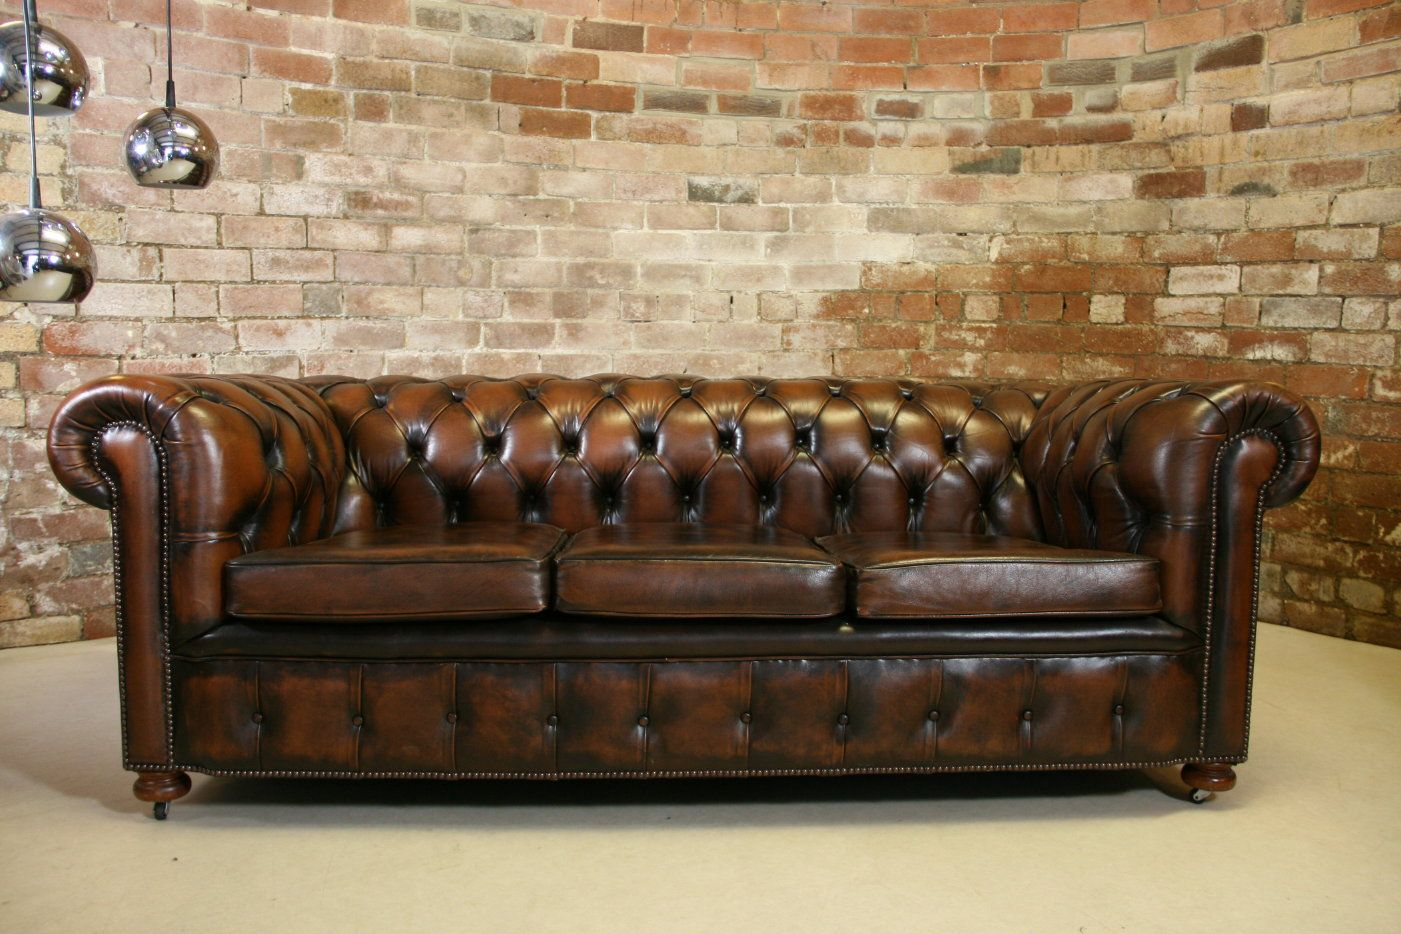 Superieur CHESTERFIELD ANTIQUE BROWN LEATHER 3 SEATER SOFA RETRO BUTTONED COUCH